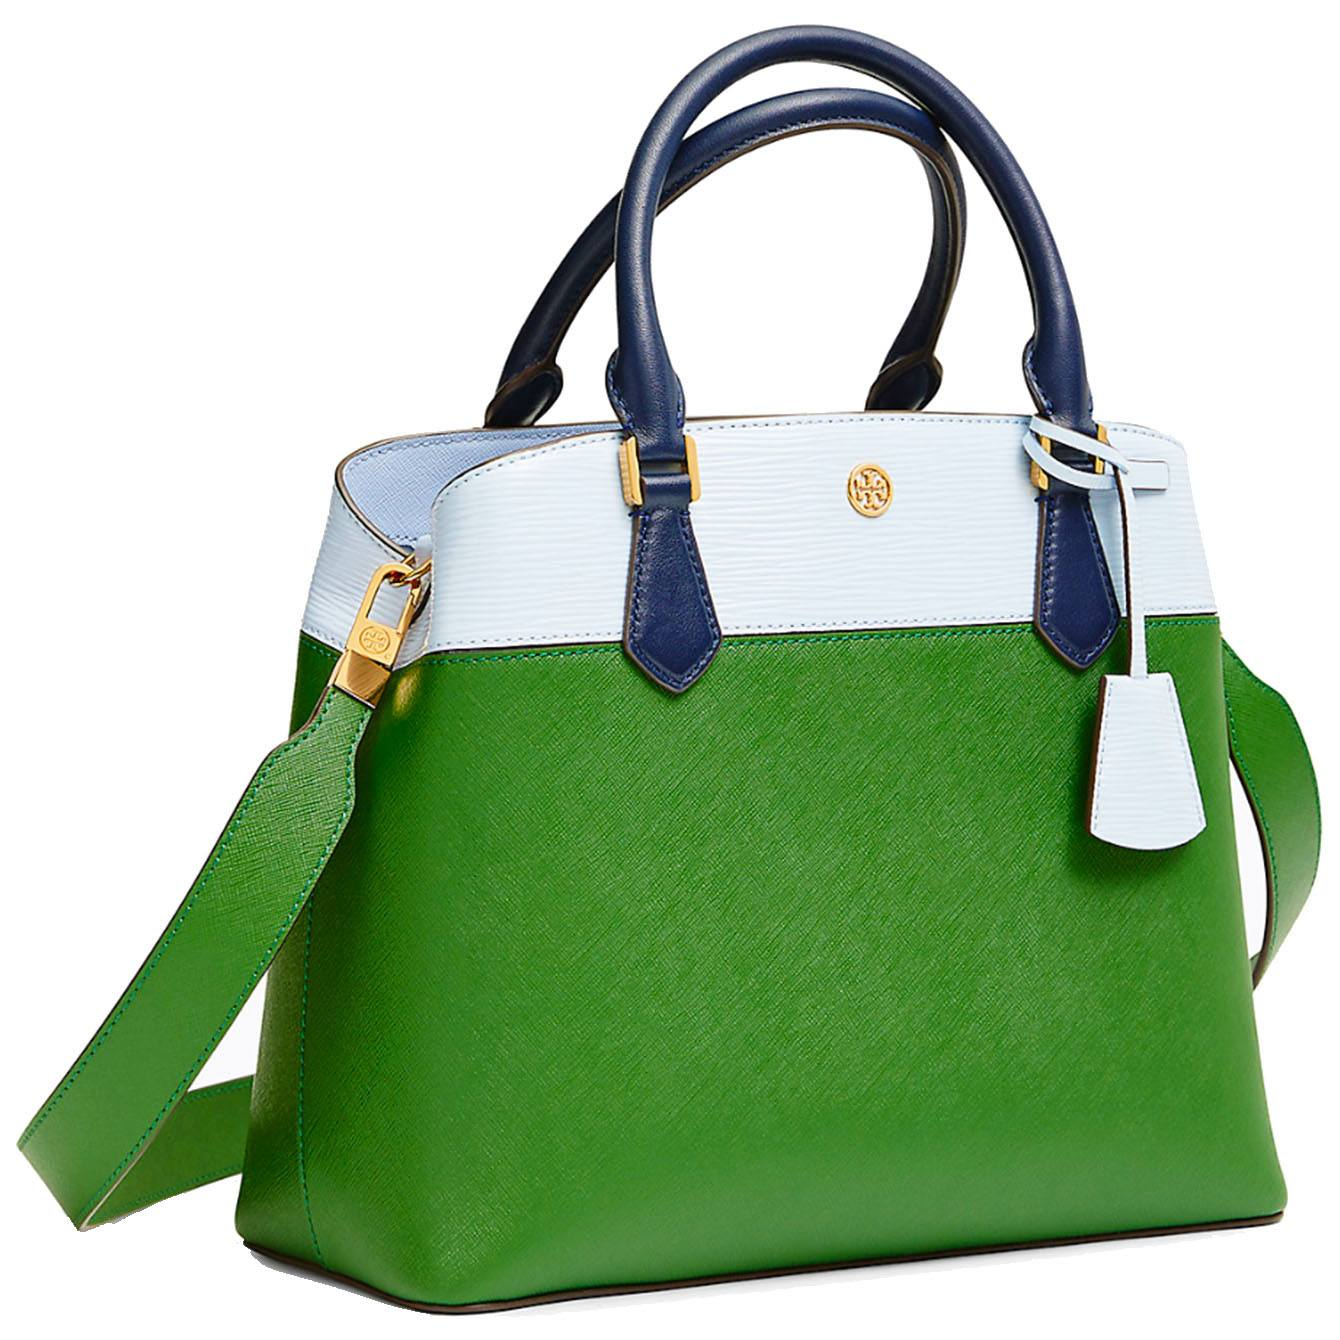 The triple-compartment Tory Burch Robsinson tote is made from color-blocked leather, with gently curved lines, it's ultra-functional — with a pocket for every essential — and detailed with a logo charm and an optional strap